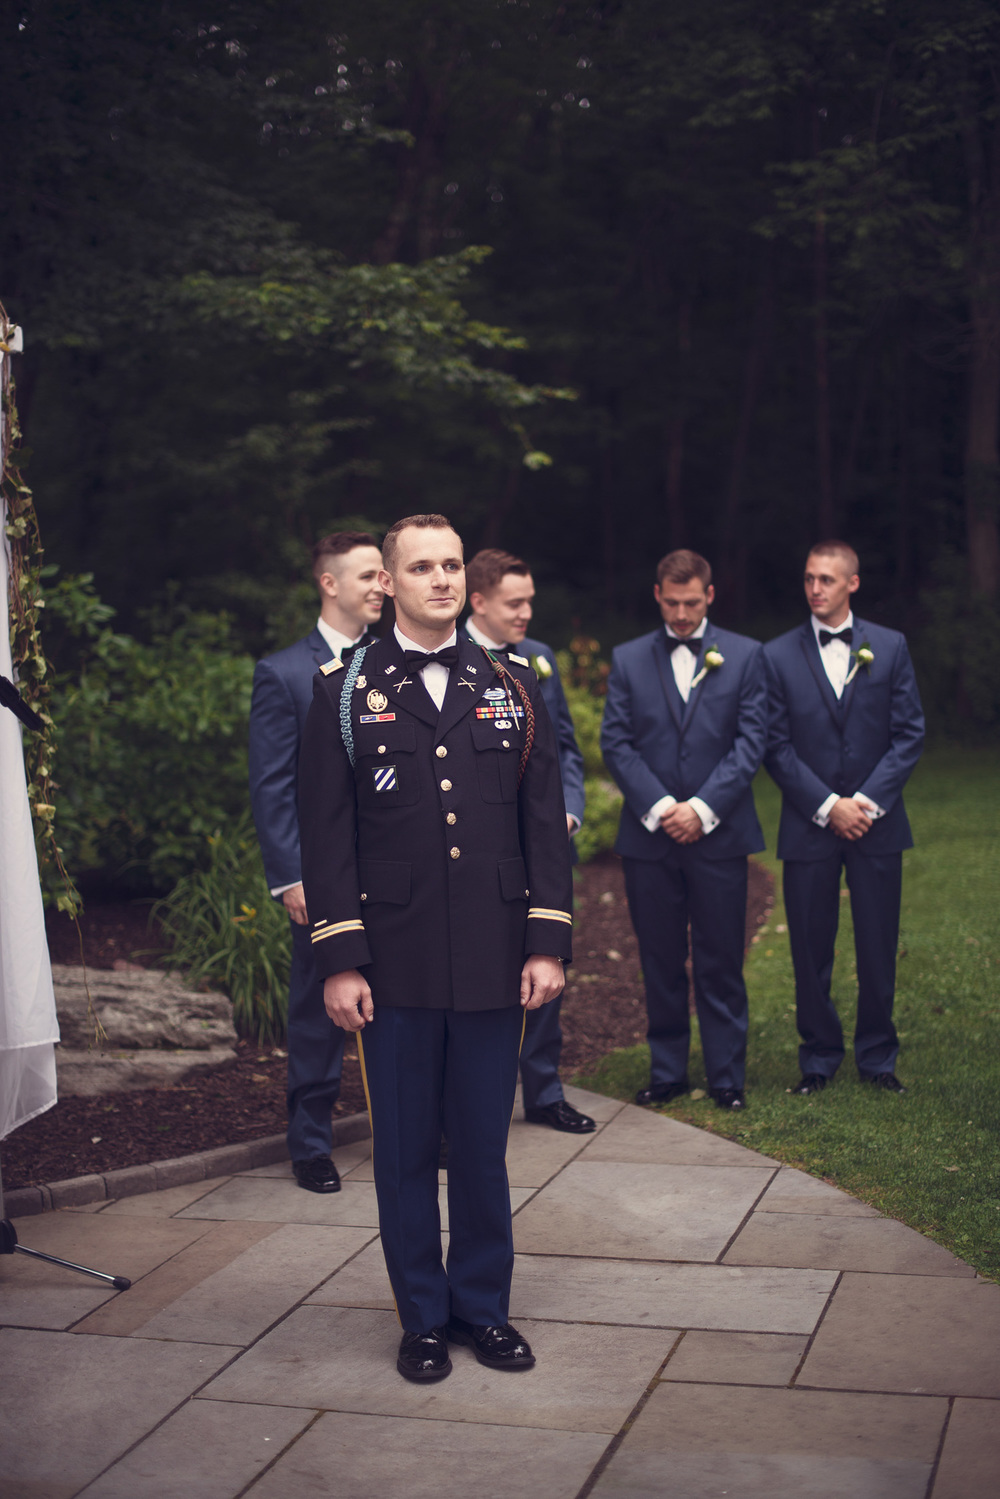 groom 1LT First Lieutenant ceremony formal alter portrait THPHOTO waiting